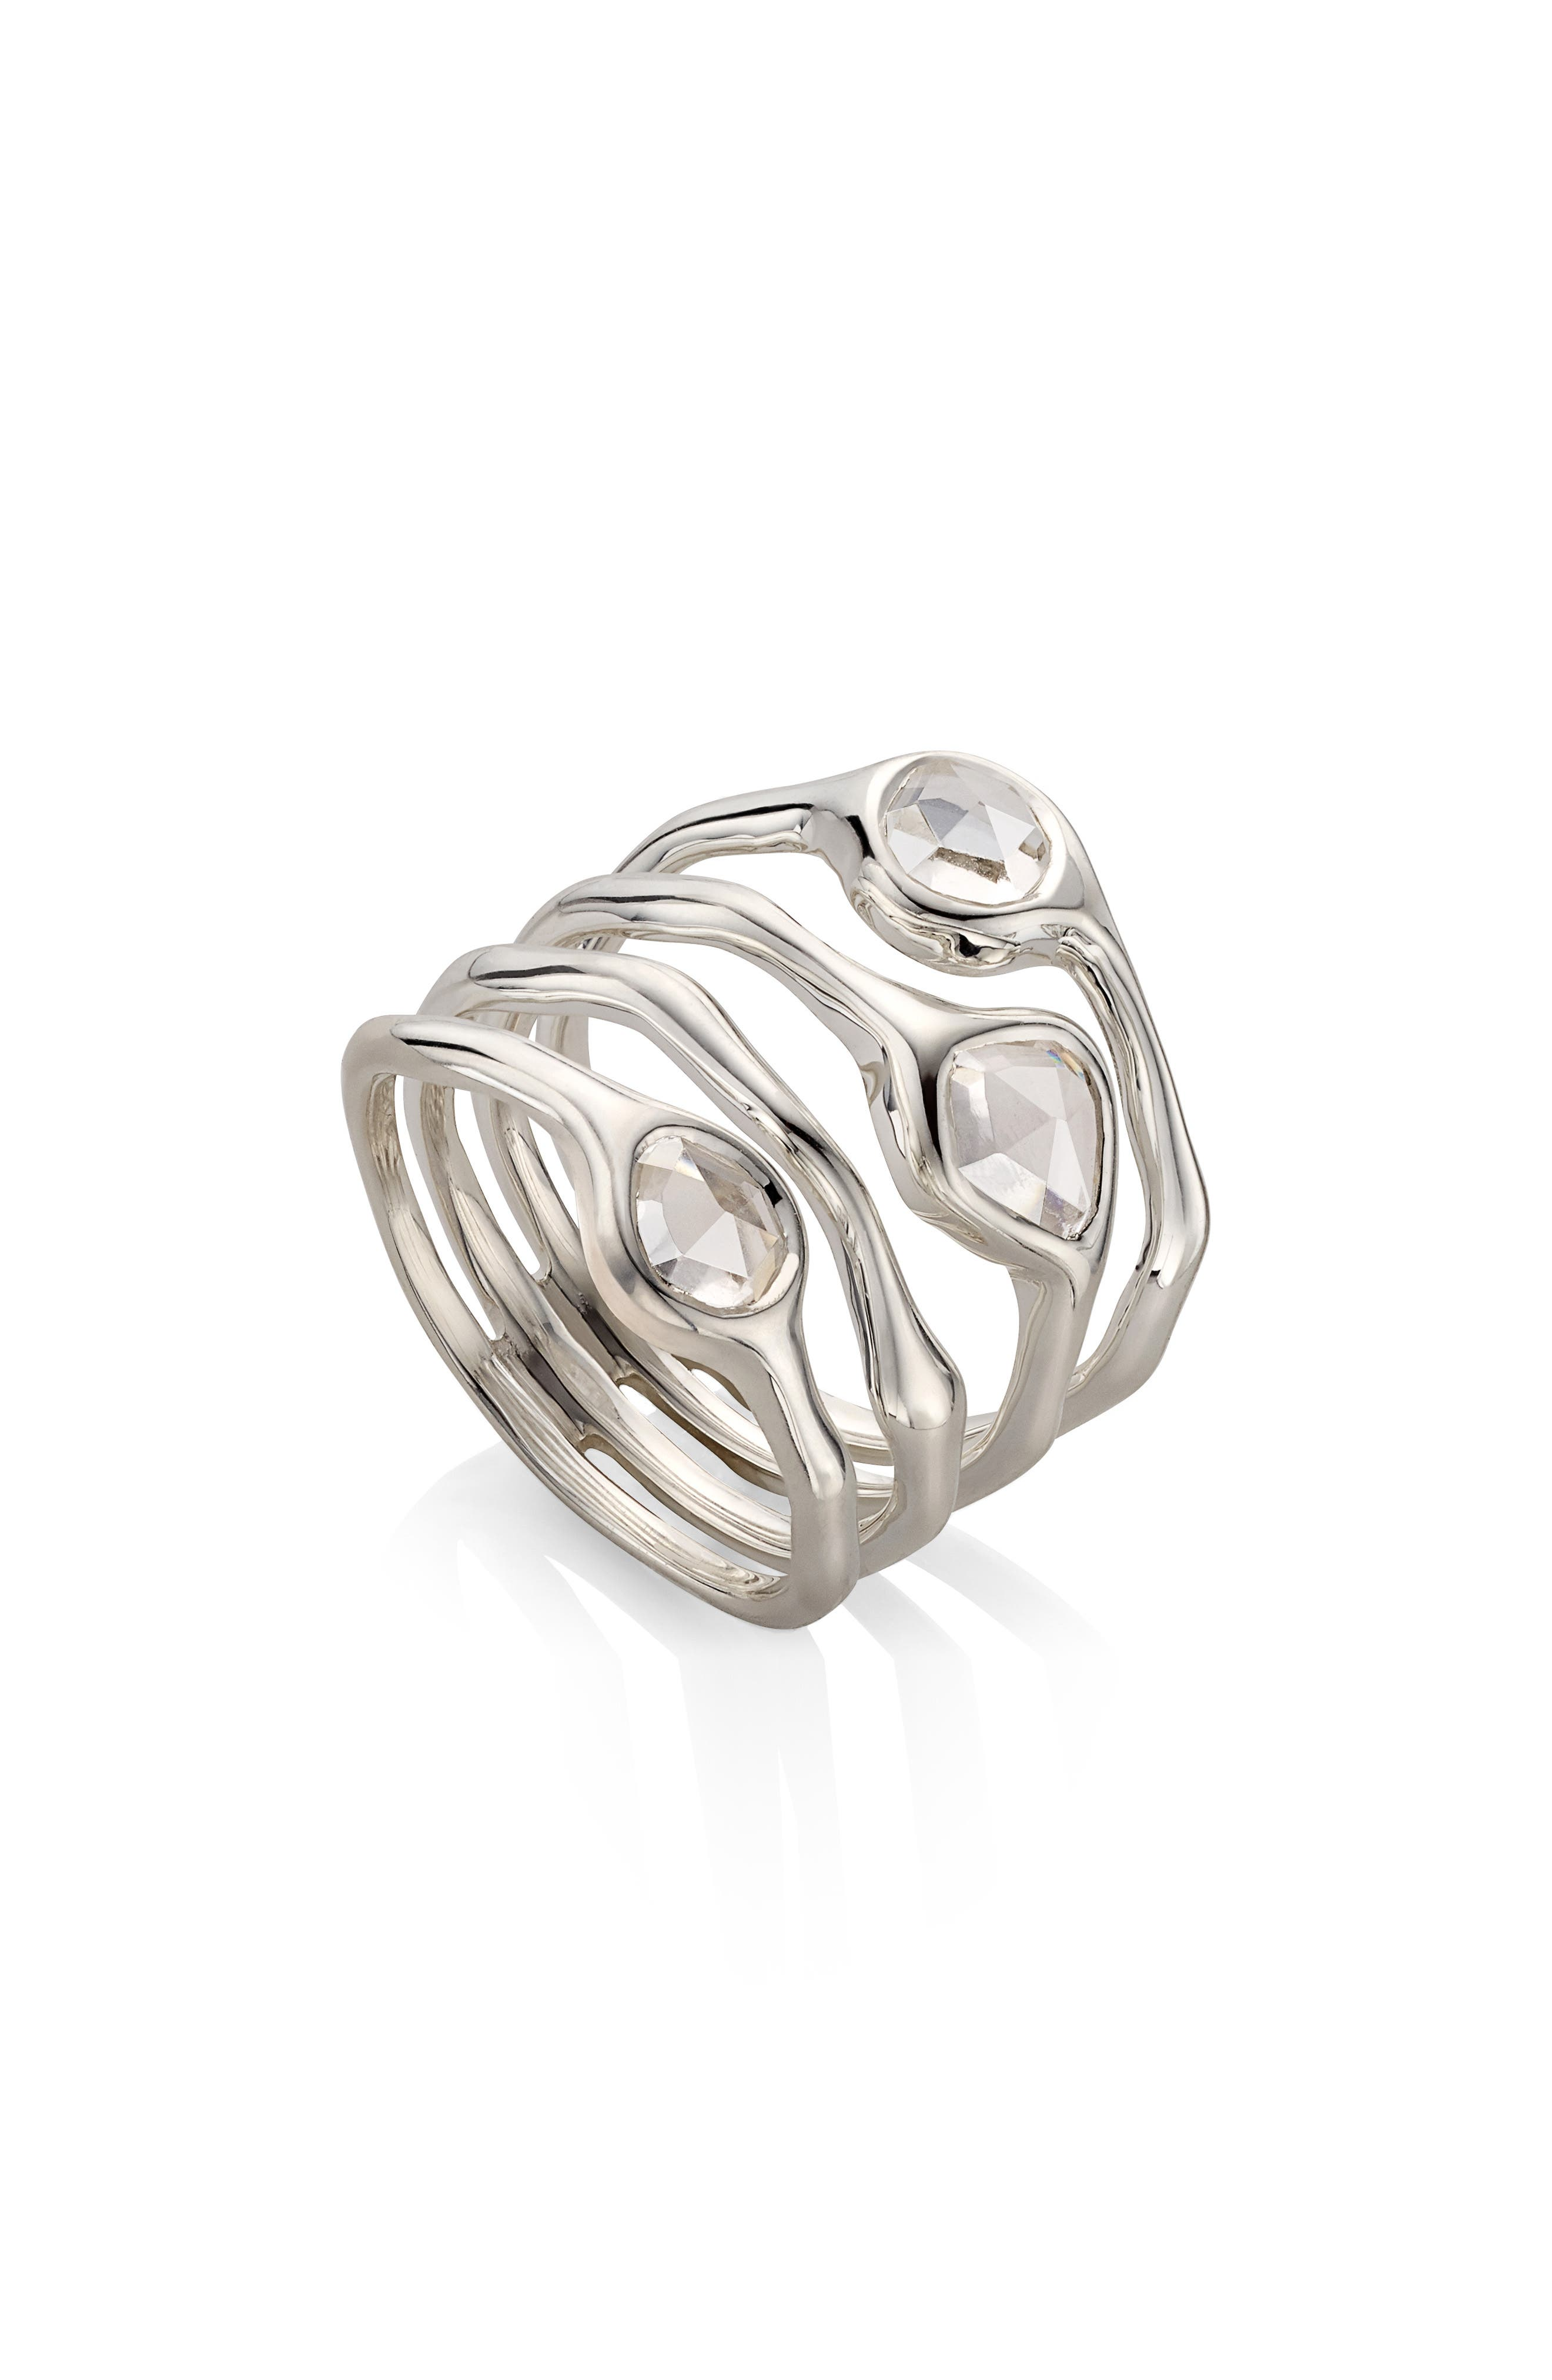 Siren Cluster Cocktail Ring,                         Main,                         color, SILVER/ ROCK CRYSTAL